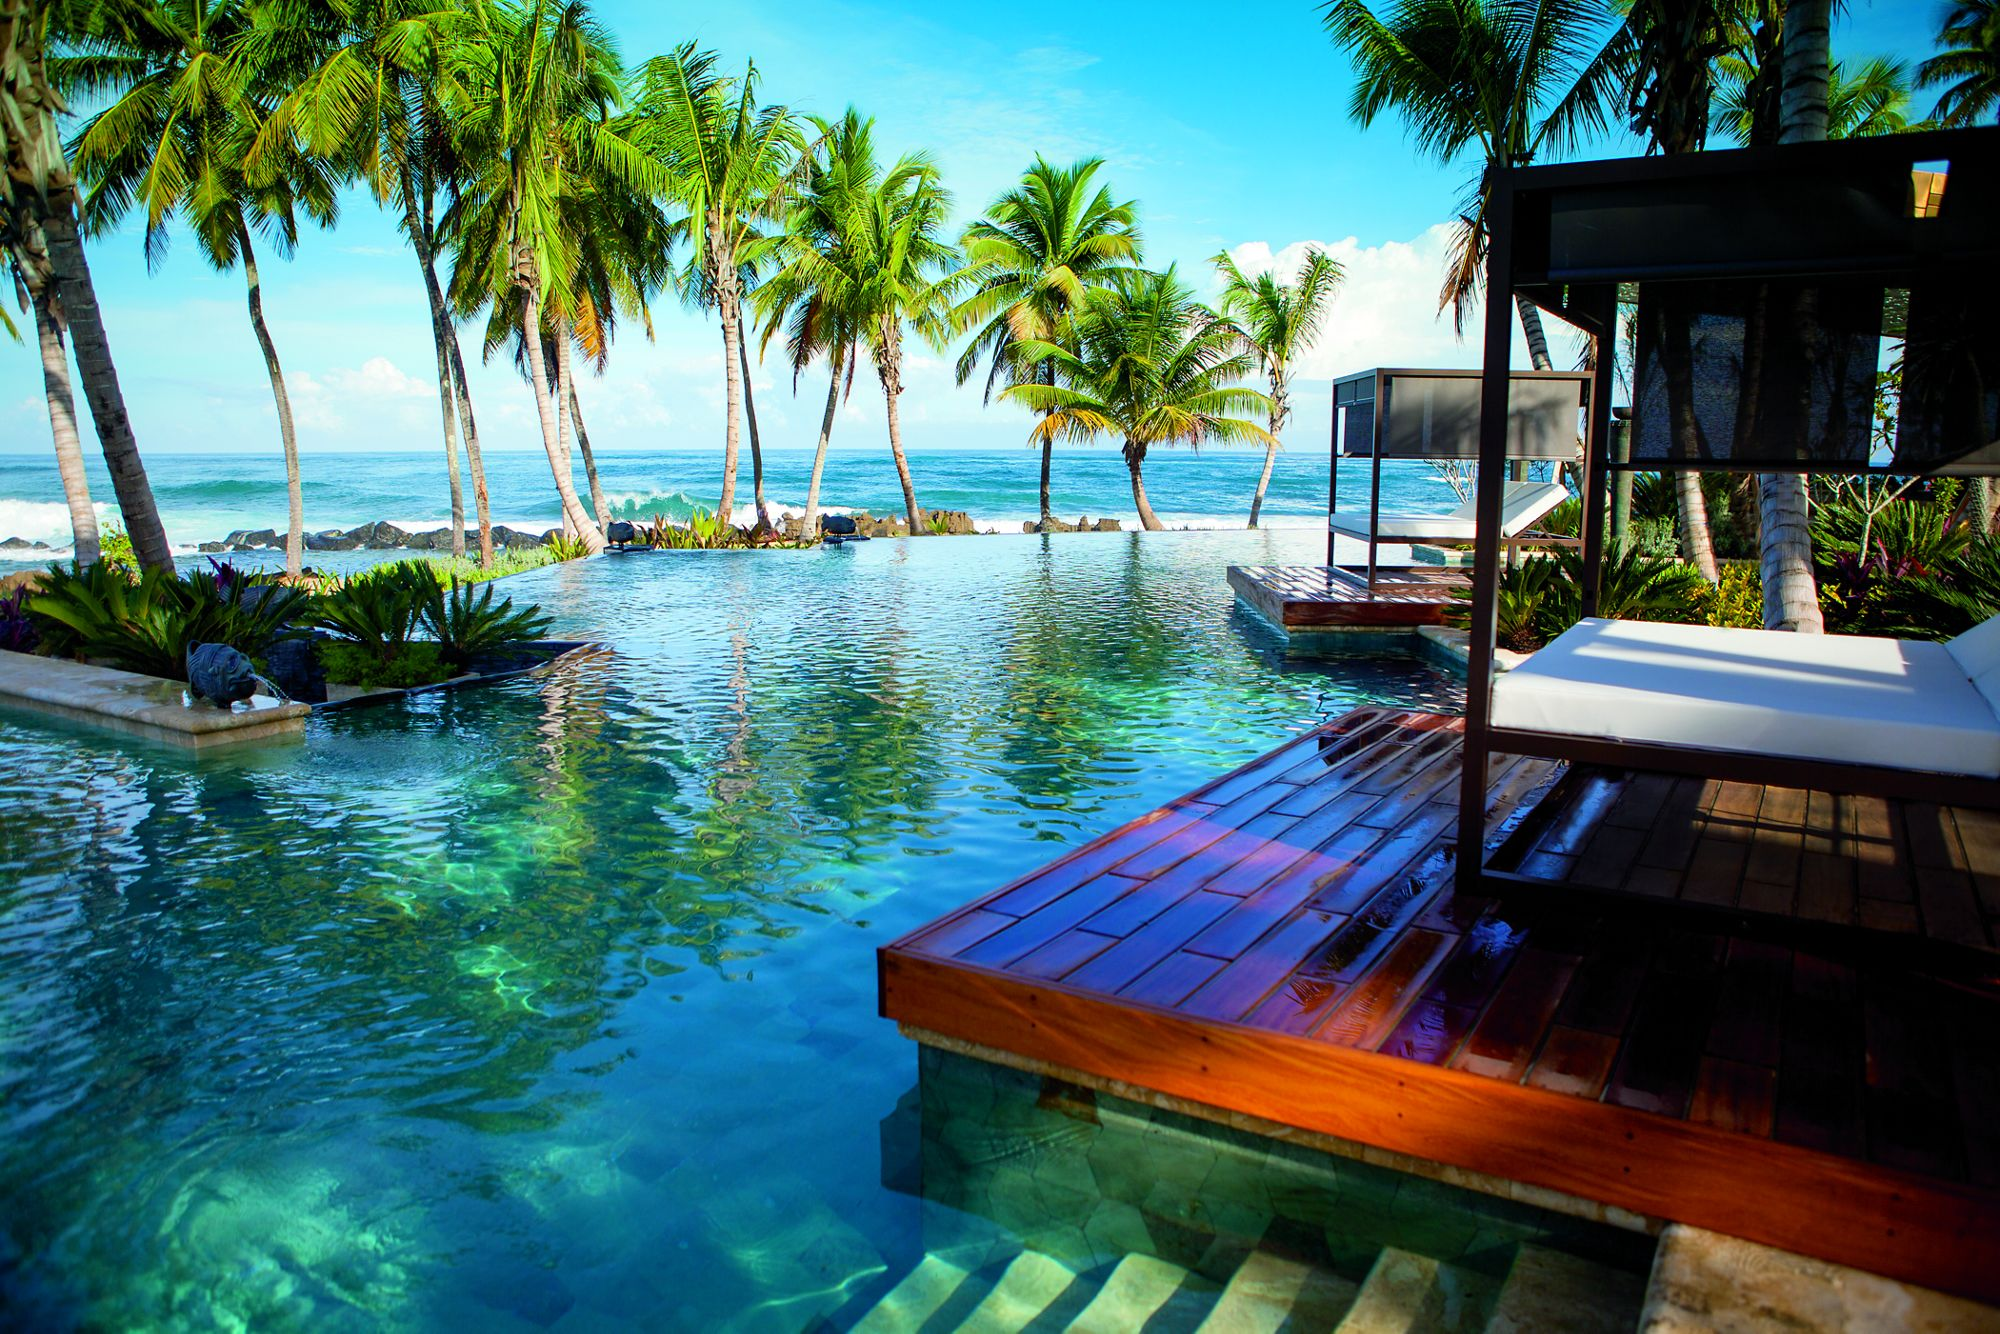 Infinity pool with comfortable cabana lounges and the ocean in the near background